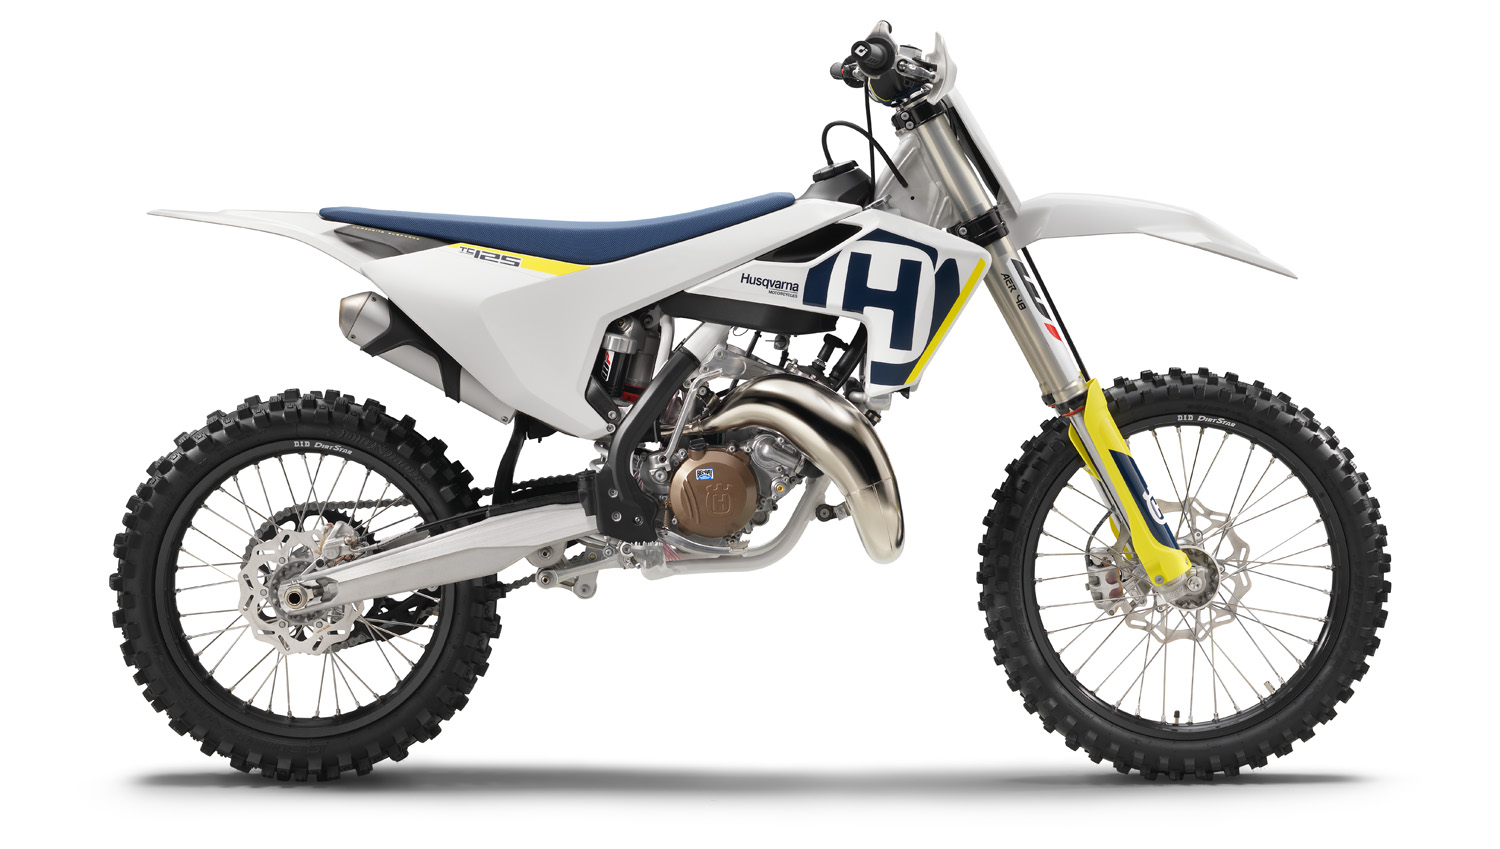 2018 husqvarna mx two strokes dirt bike magazine. Black Bedroom Furniture Sets. Home Design Ideas